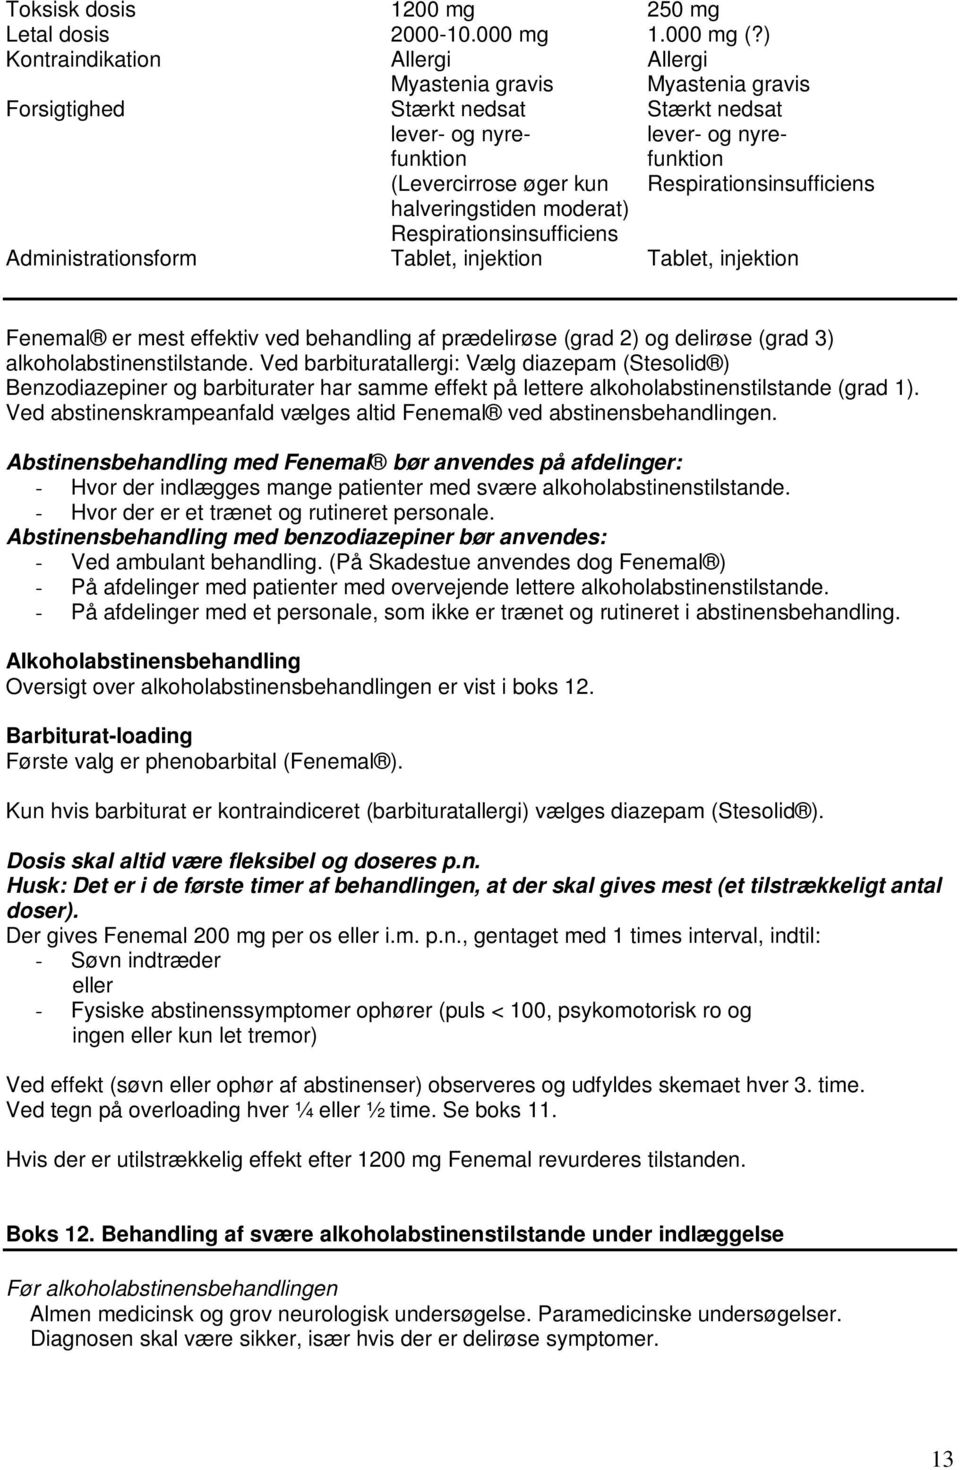 Respirationsinsufficiens halveringstiden moderat) Respirationsinsufficiens Administrationsform Tablet, injektion Tablet, injektion Fenemal er mest effektiv ved behandling af prædelirøse (grad 2) og